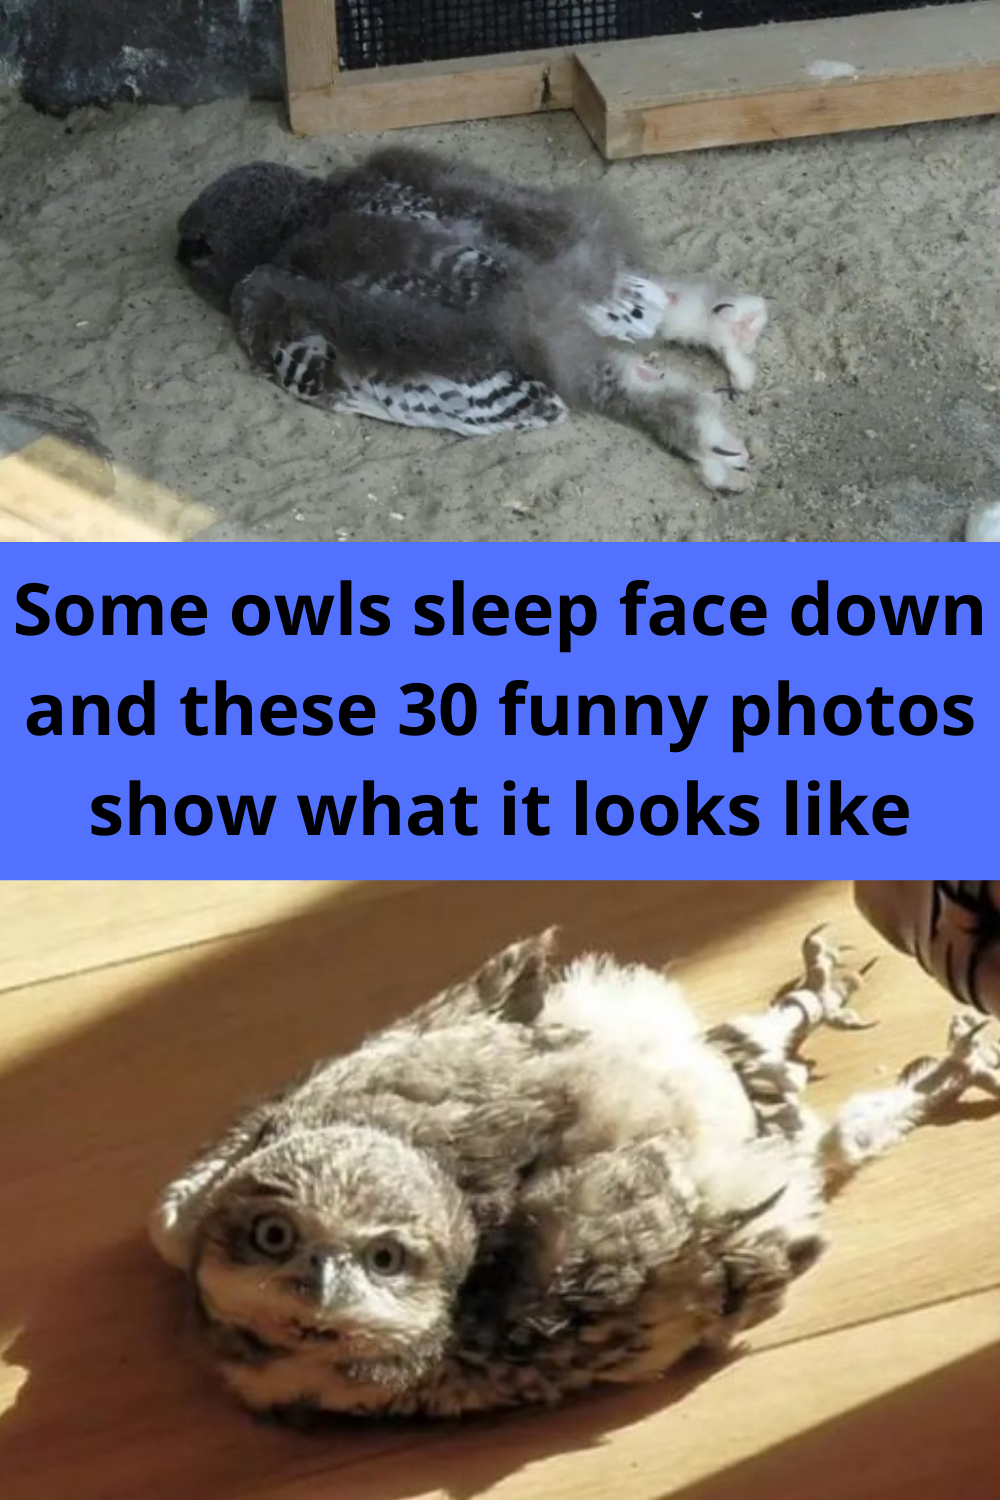 Some owls sleep face down and these 30 funny photo